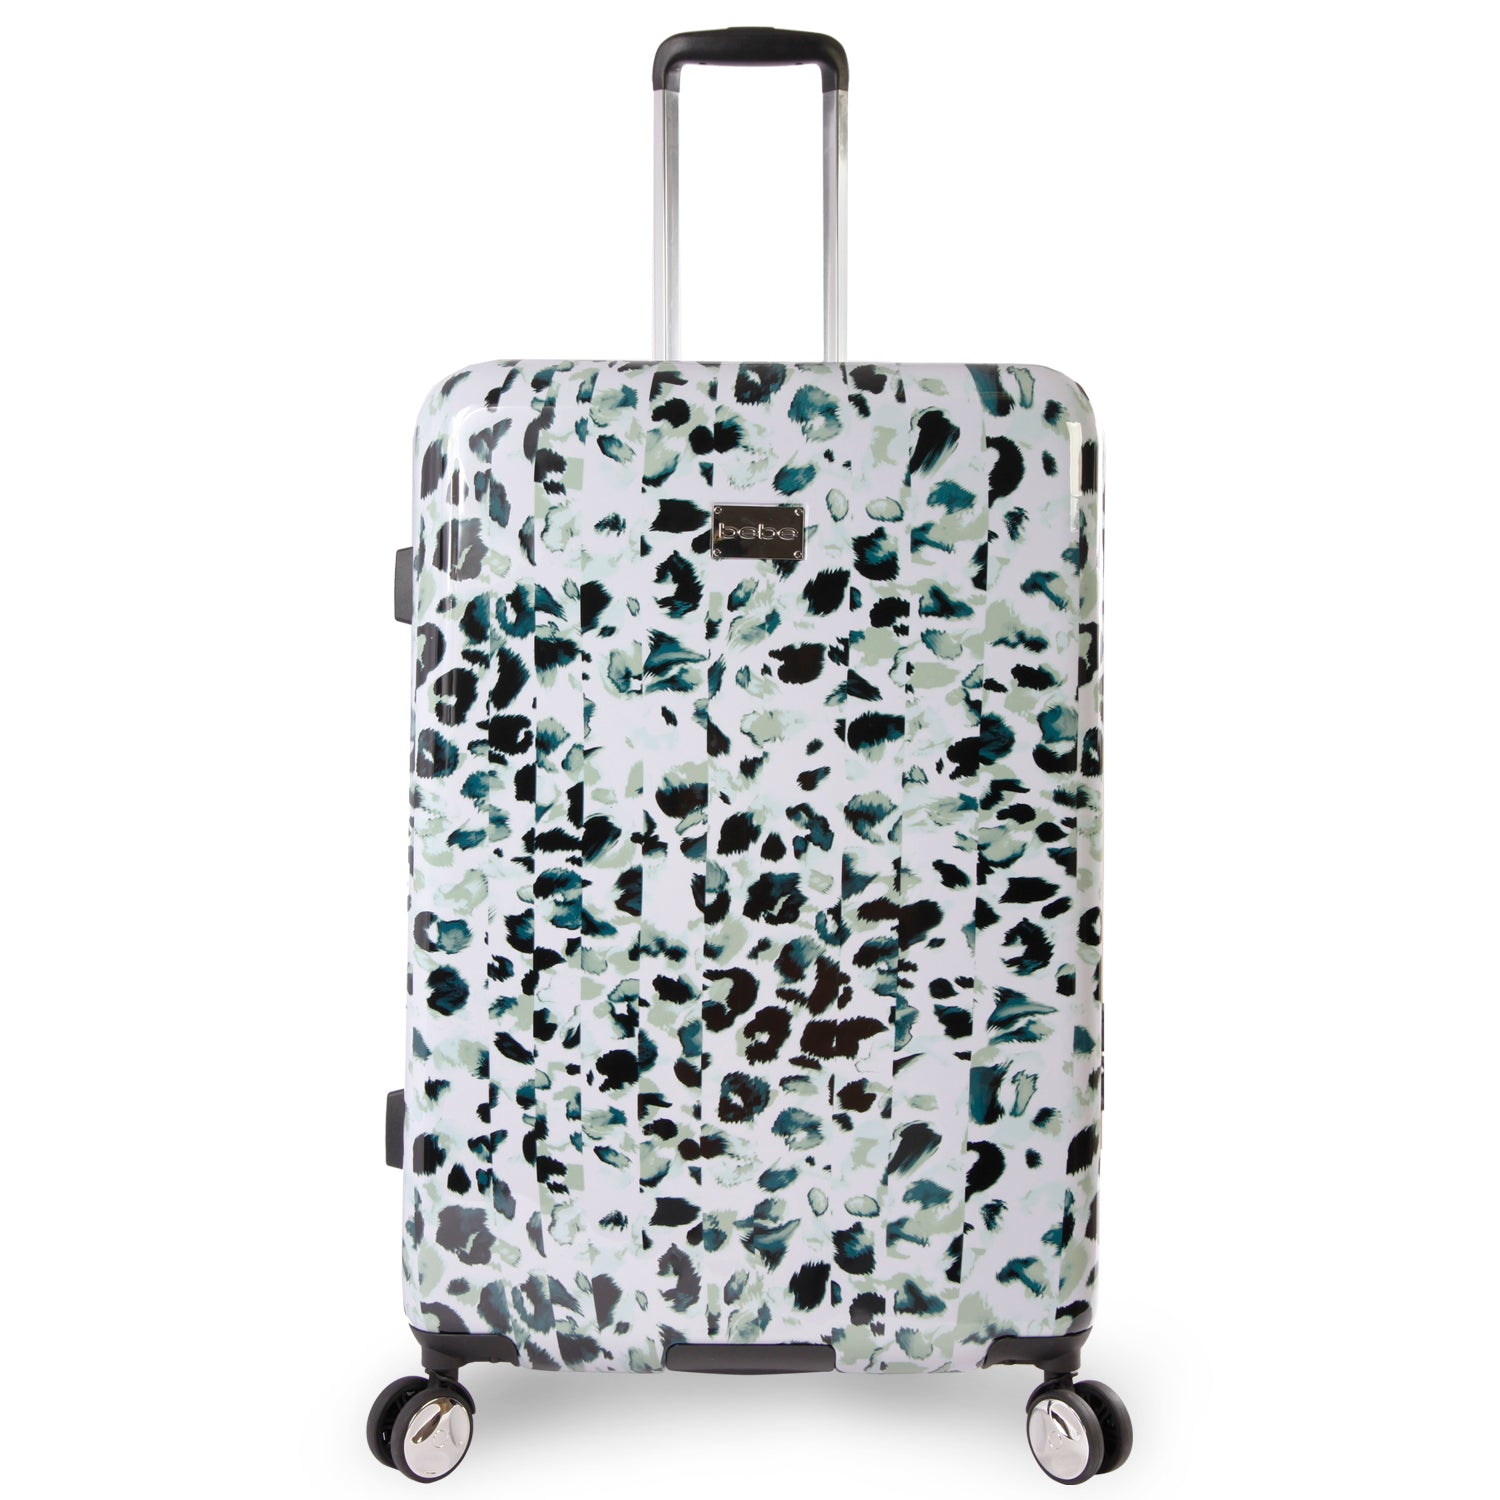 Bebe Women's Dotted 29-Inch Suitcase, Size 29 Inch in Winter Leopard